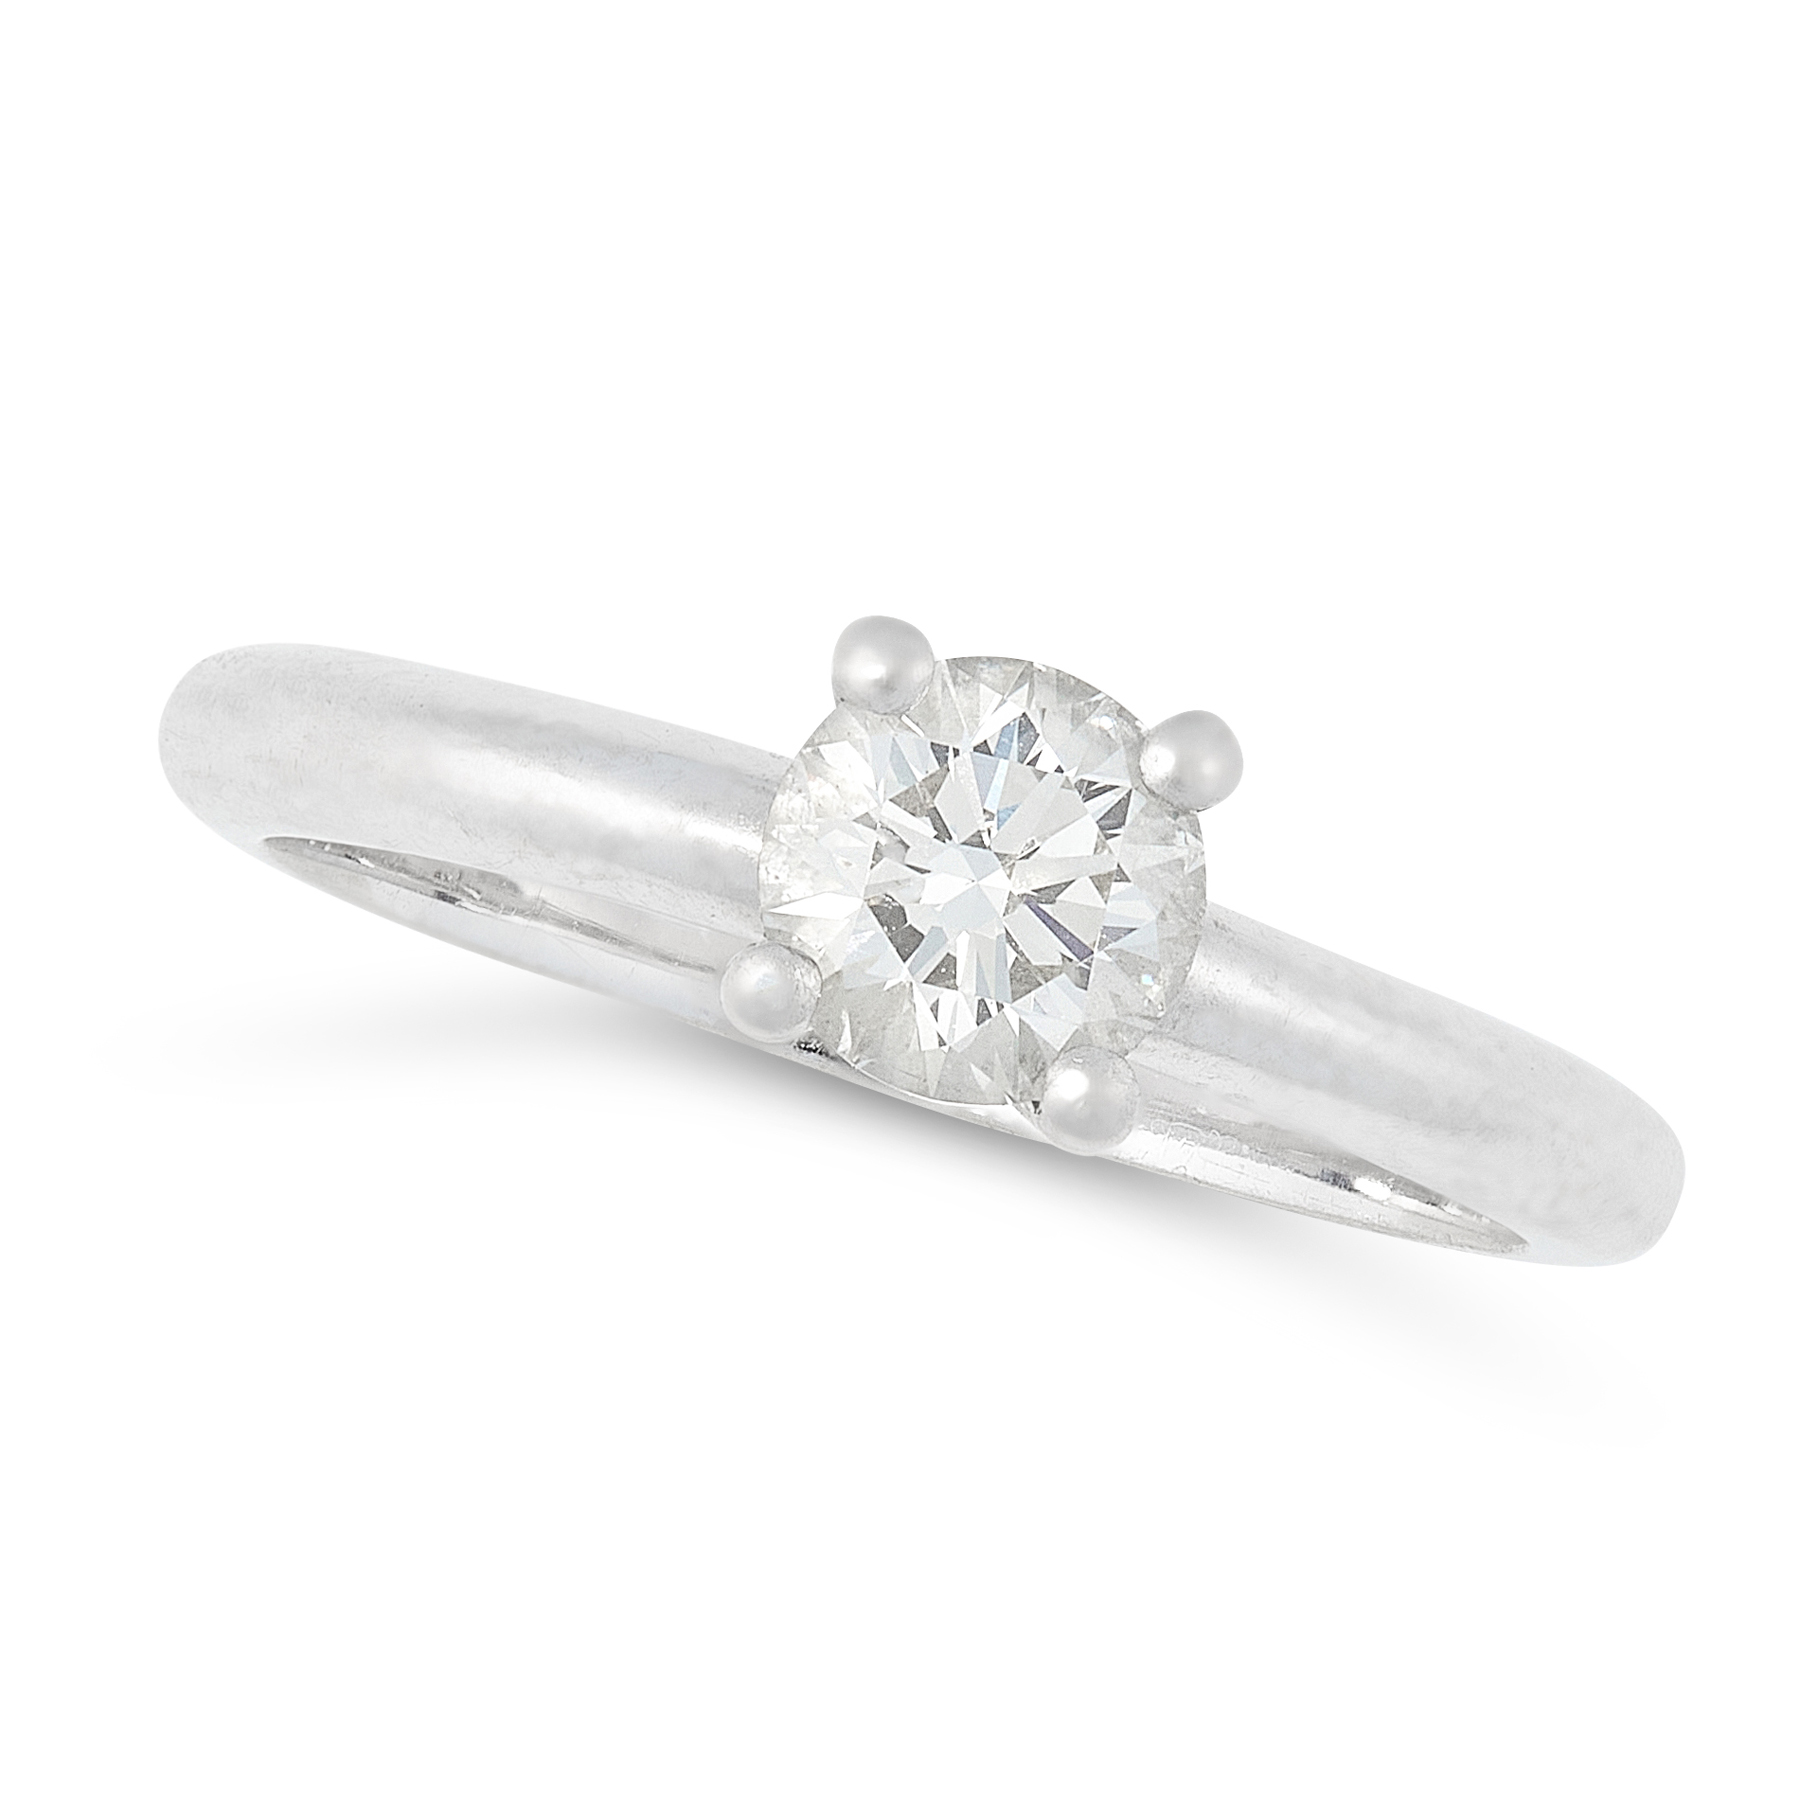 A DIAMOND SOLITAIRE RING in platinum, set with a round cut diamond of 0.53 carats, full British